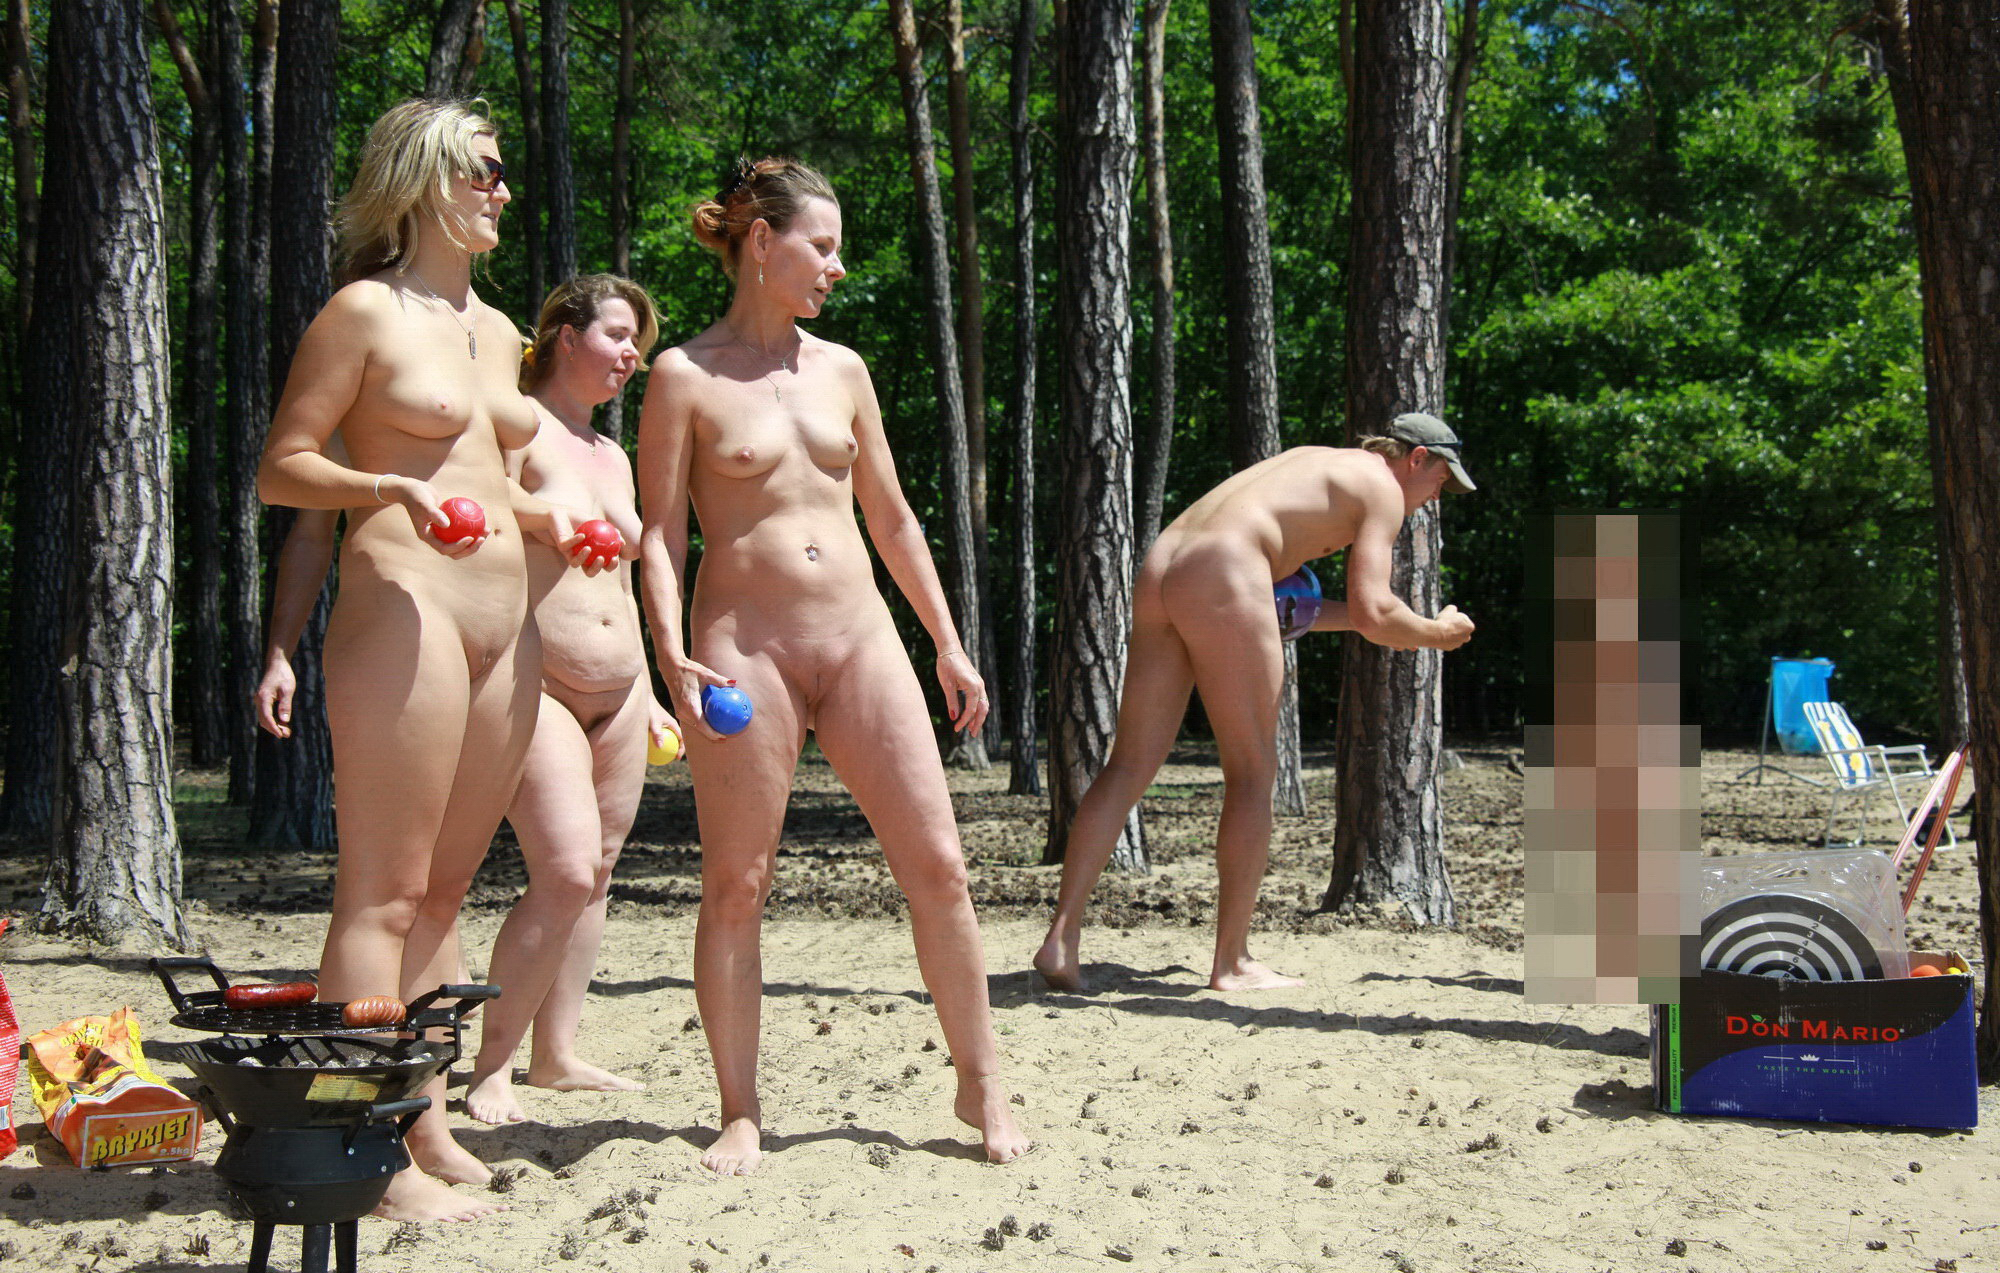 Familynude.xyz would love